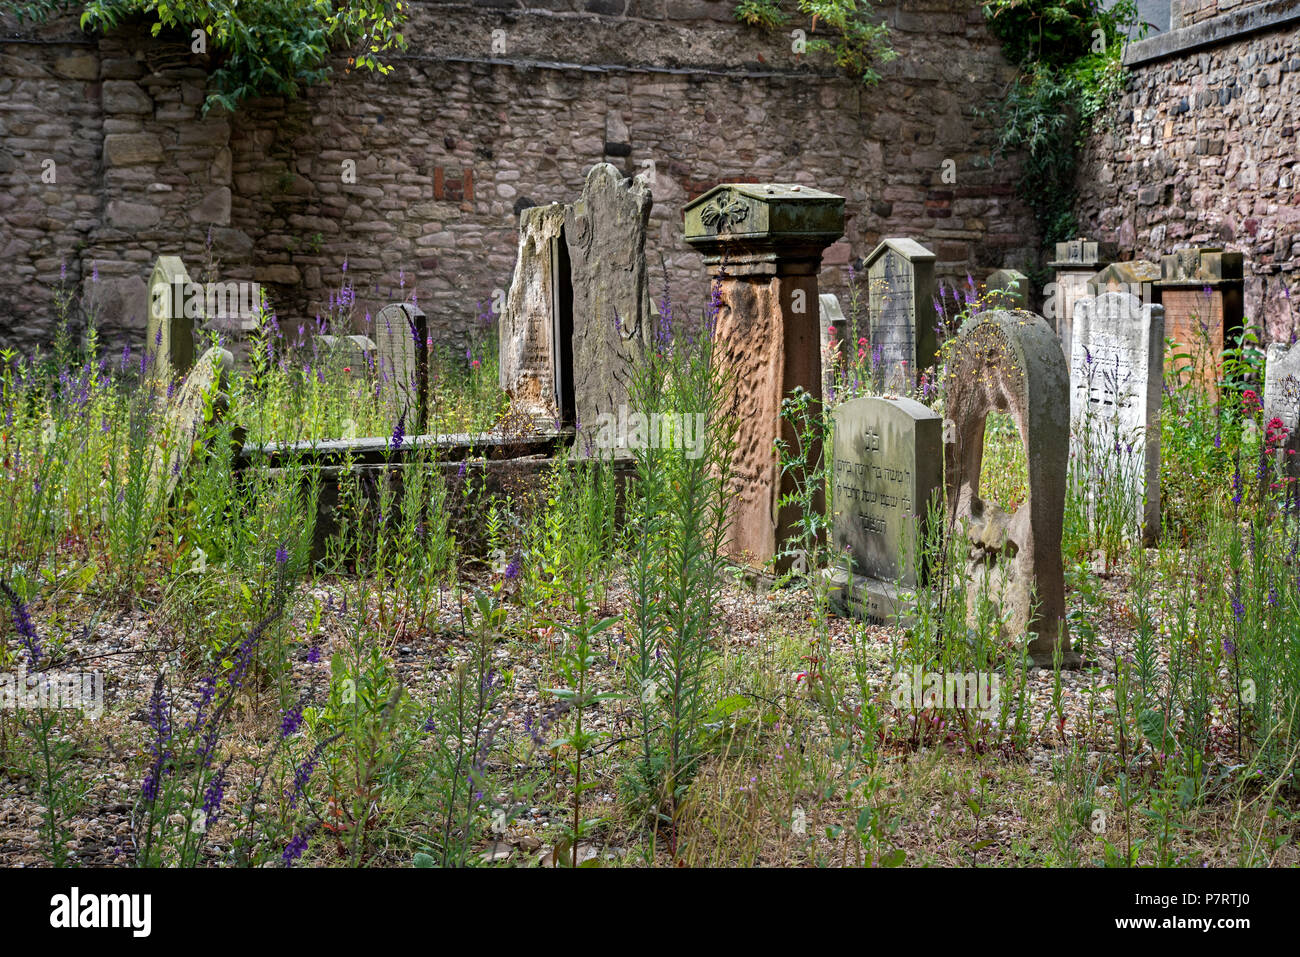 Weeds growing amongst thegraves in the Jewish Cemetery in  in what was the first Jewish Burial Ground in Scotland, opened in 1816. - Stock Image